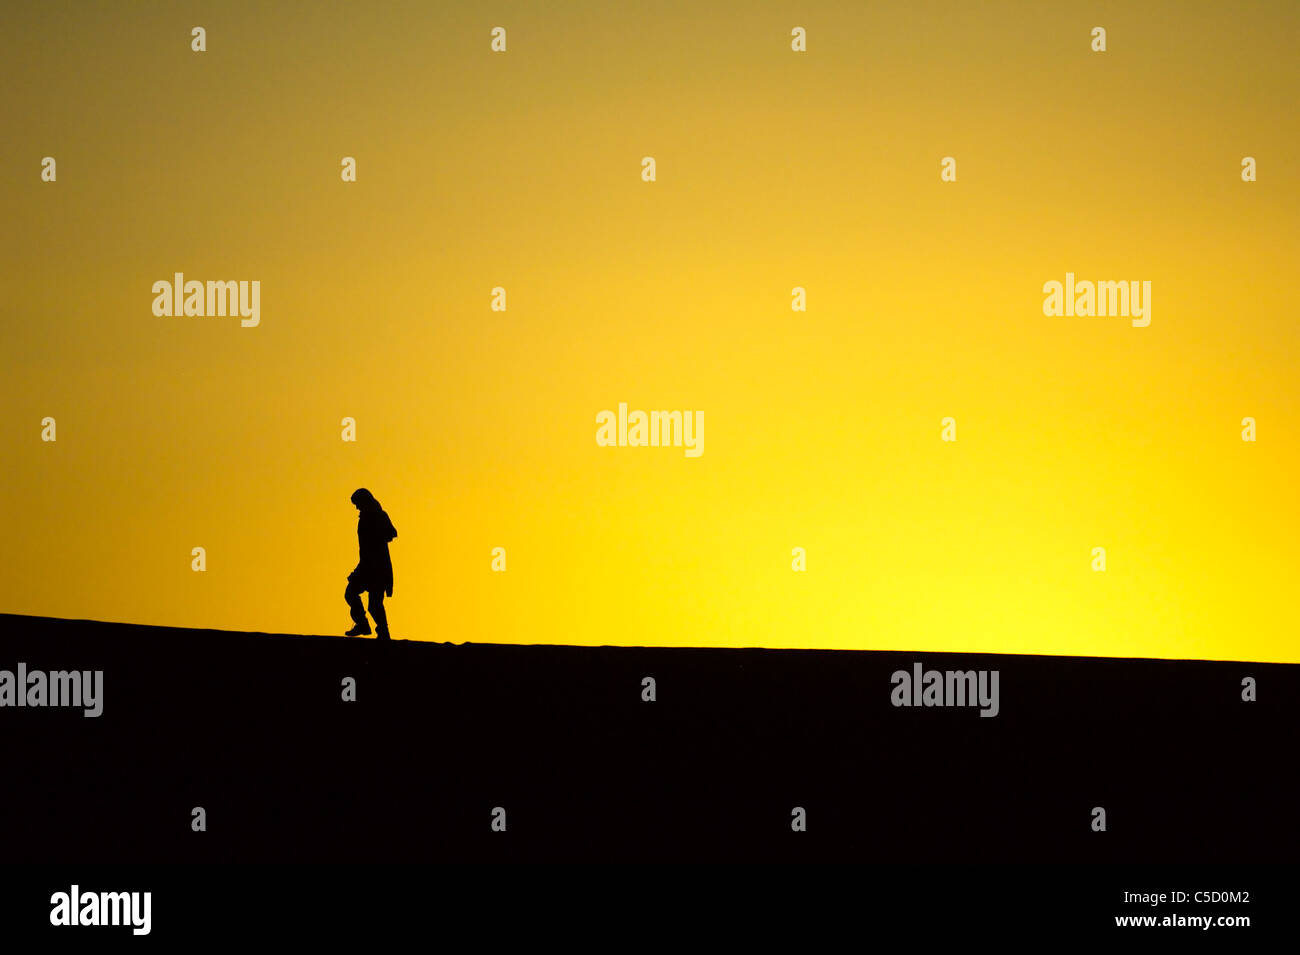 Side view of a silhouette woman against yellow background in Africa - Stock Image